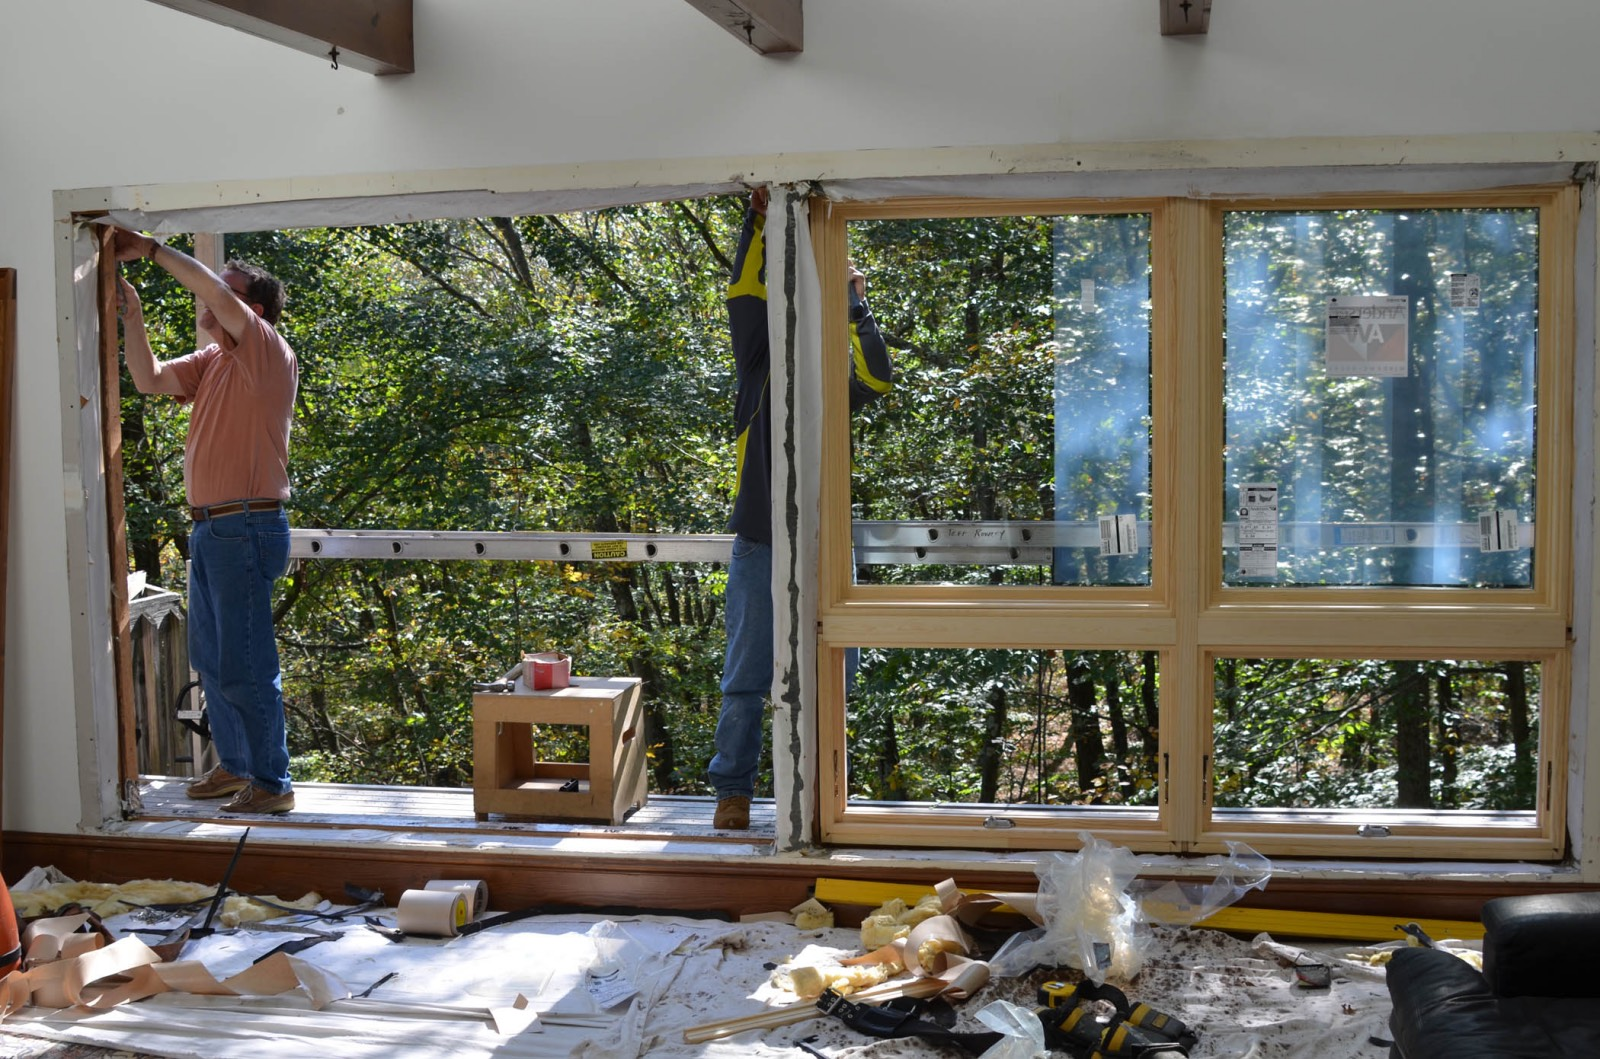 Fixing windows 5 tip in contracting top home repair for Home window replacement